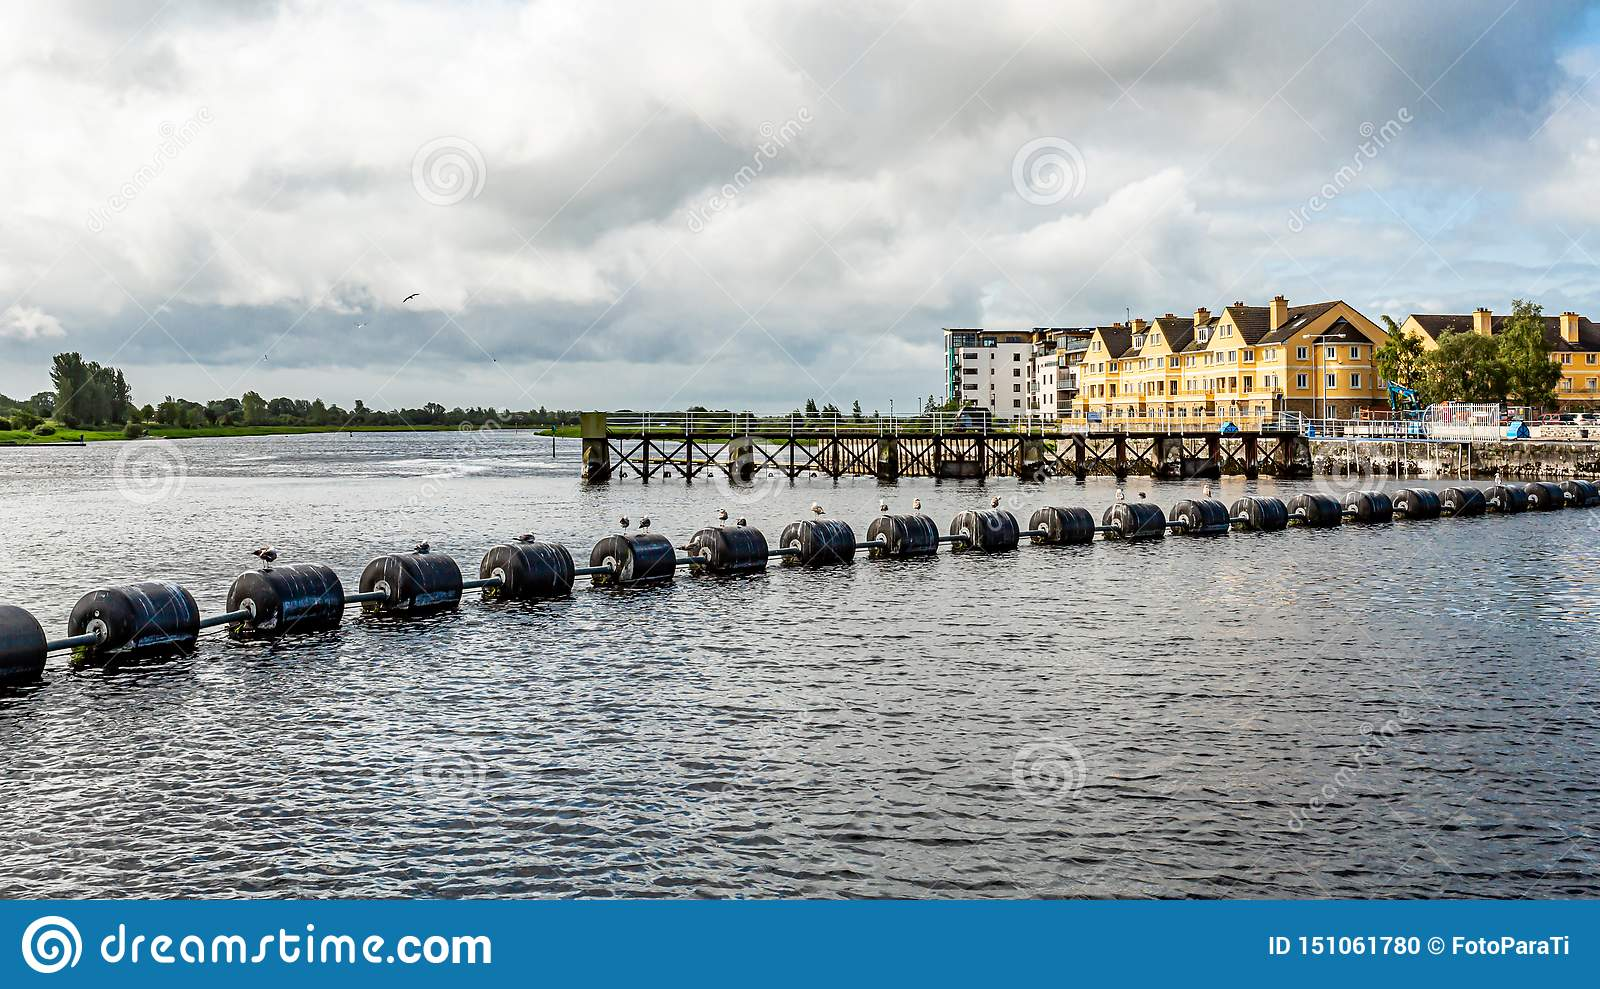 System of lock, weir and sluice gates in the Shannon river with black buoys in Athlone town